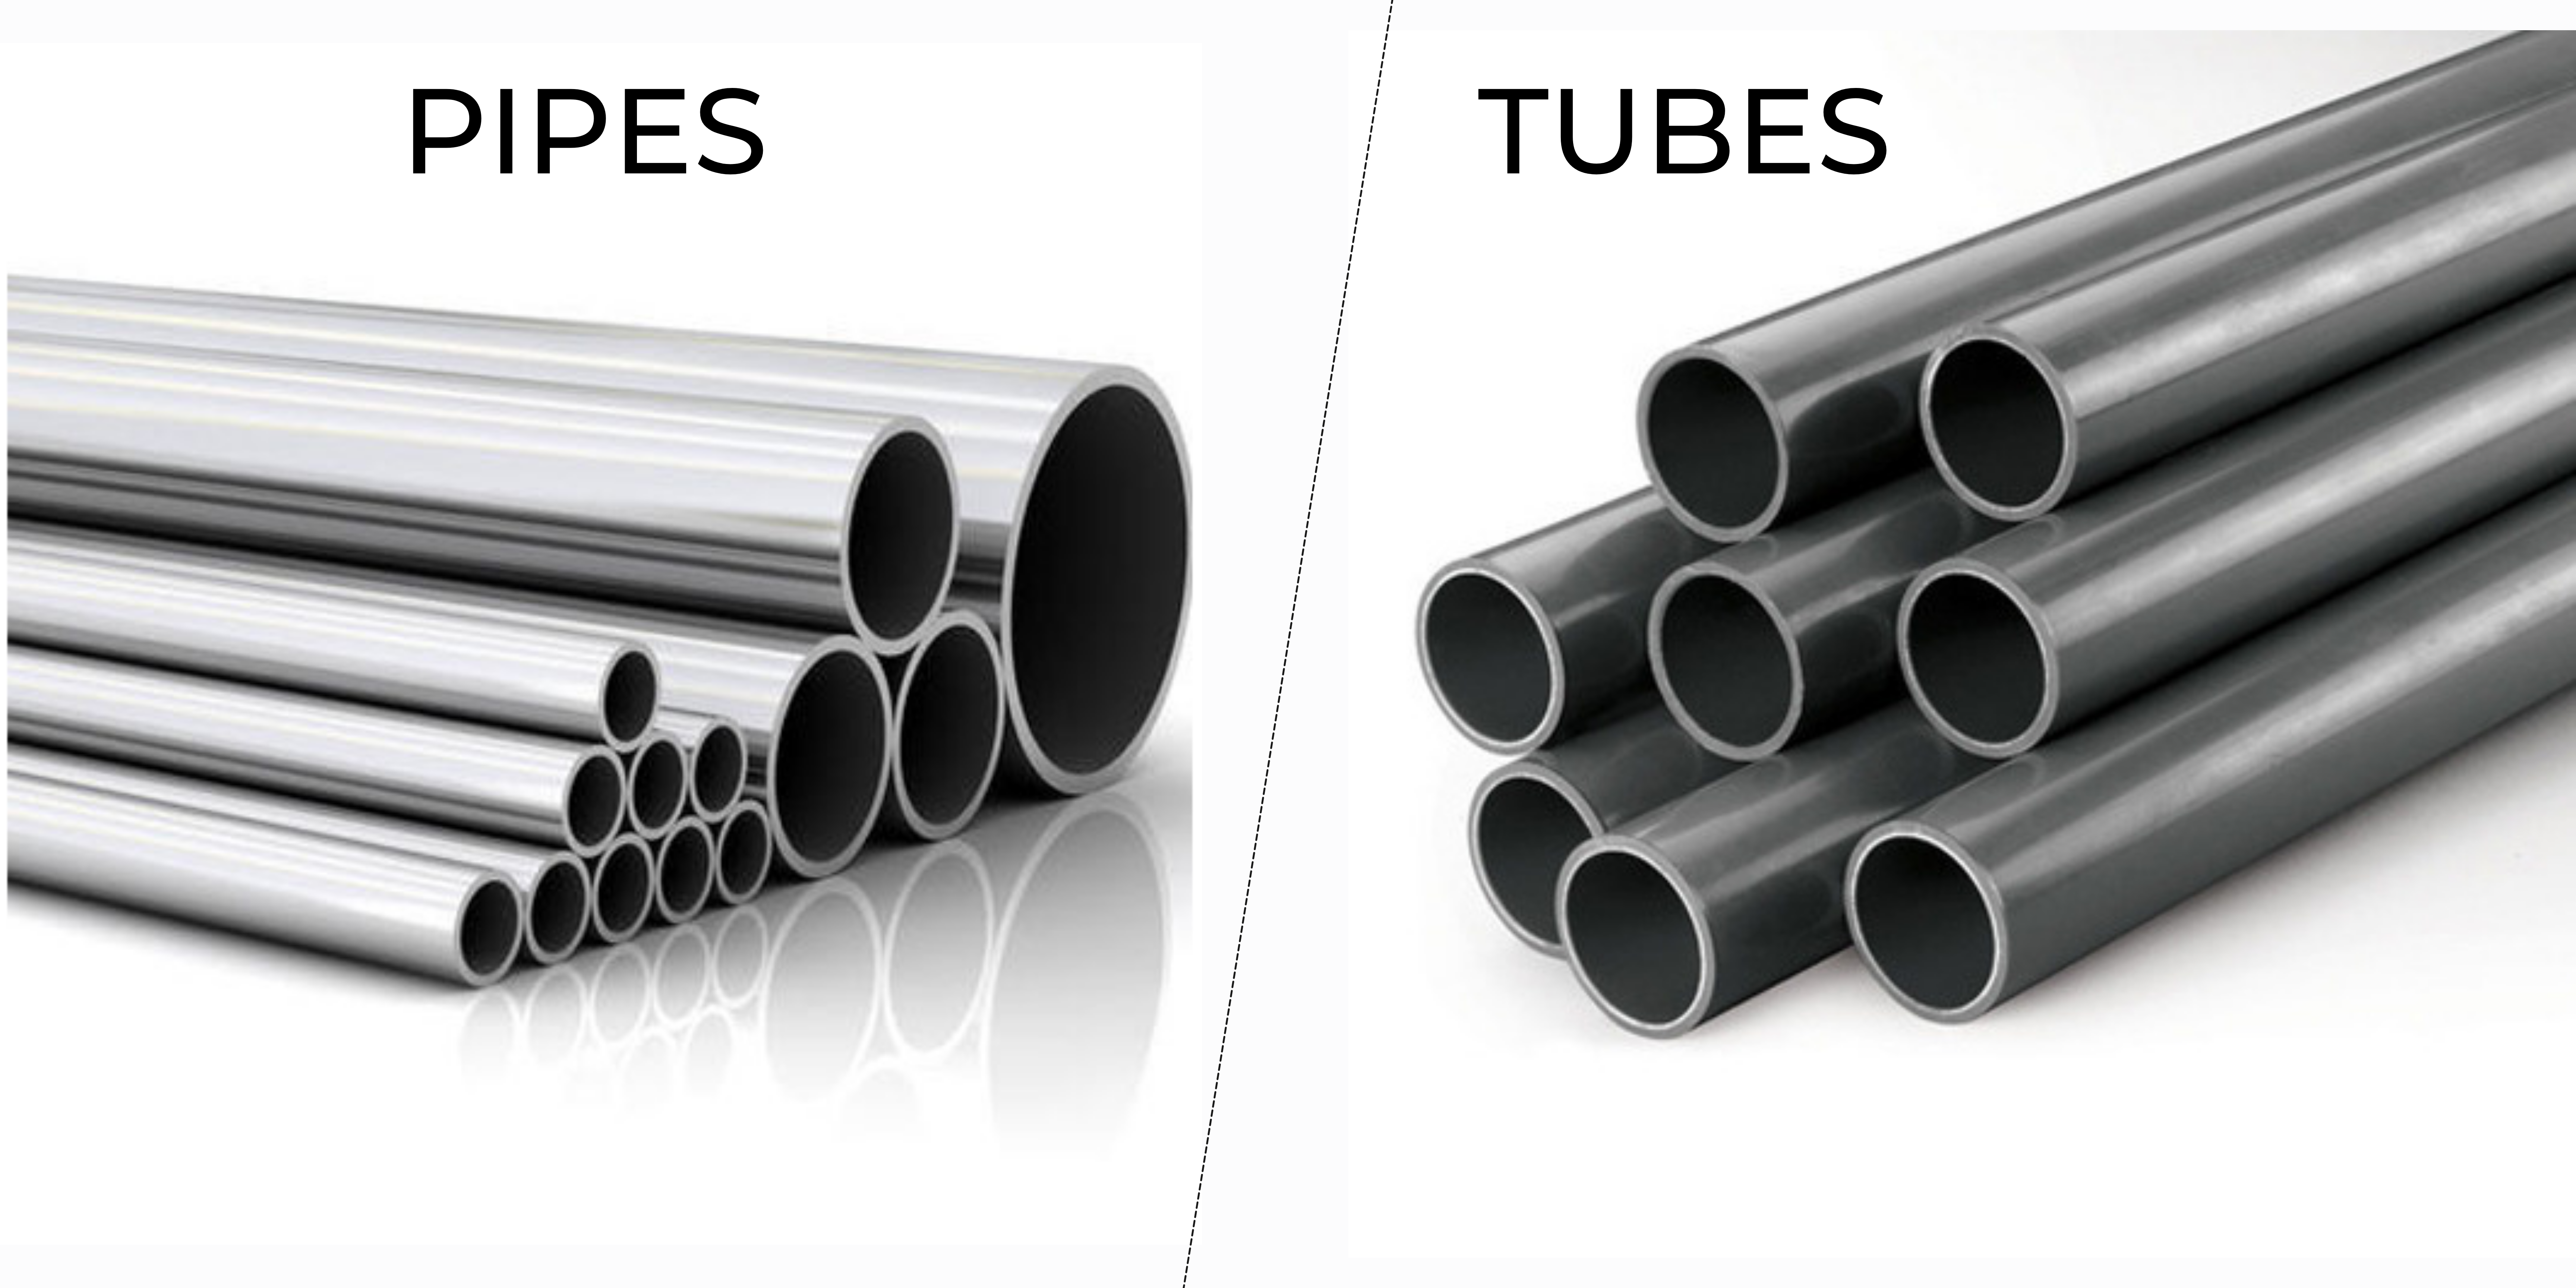 Differences between Steel Tubes and Steel Pipes